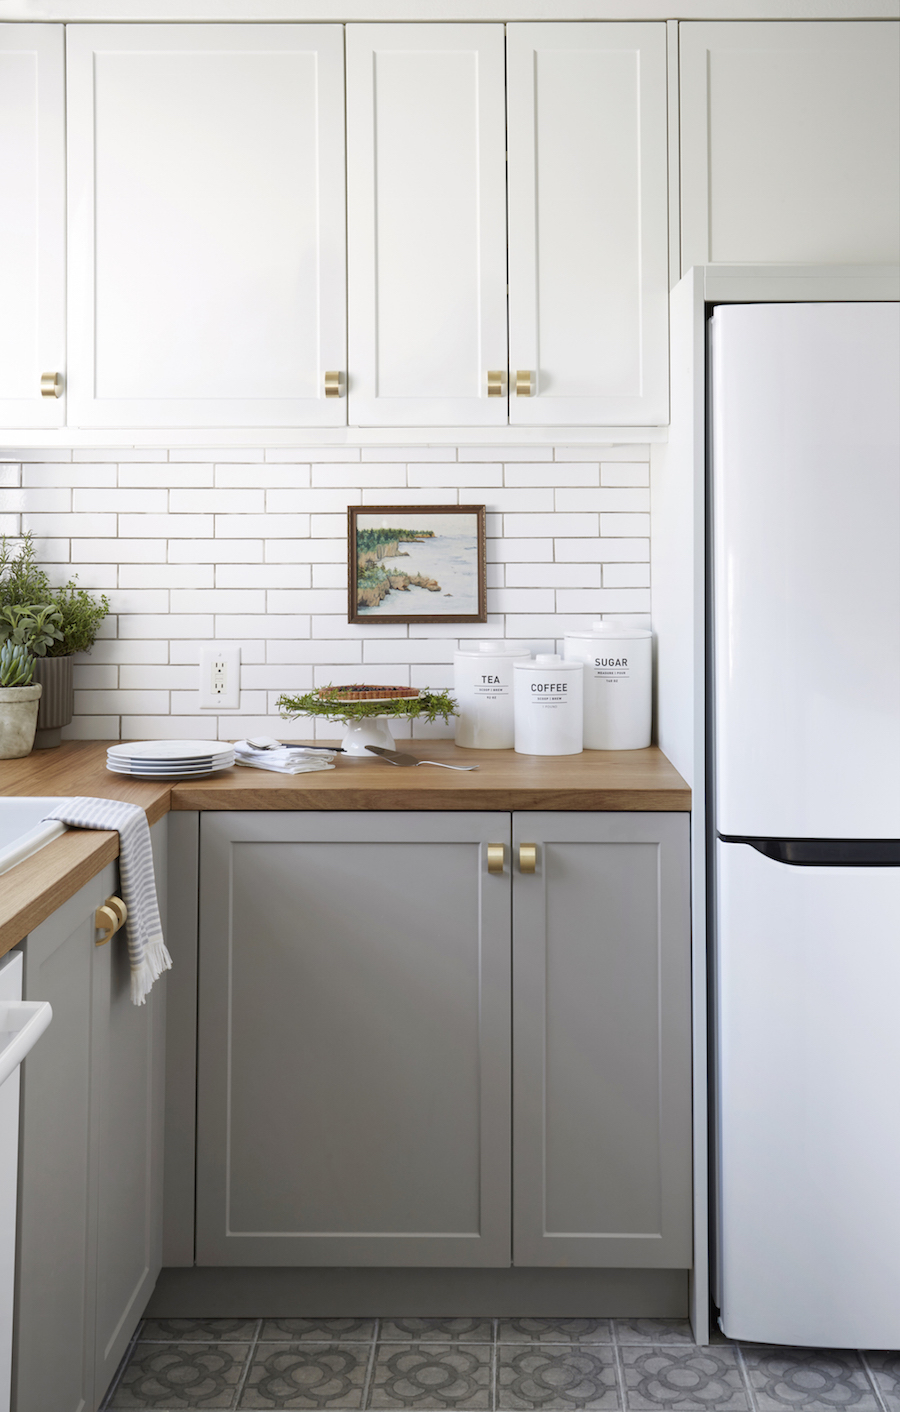 Brass Kitchen Cabinet Hardware Best Kitchen Gallery | Rachelxblog ...